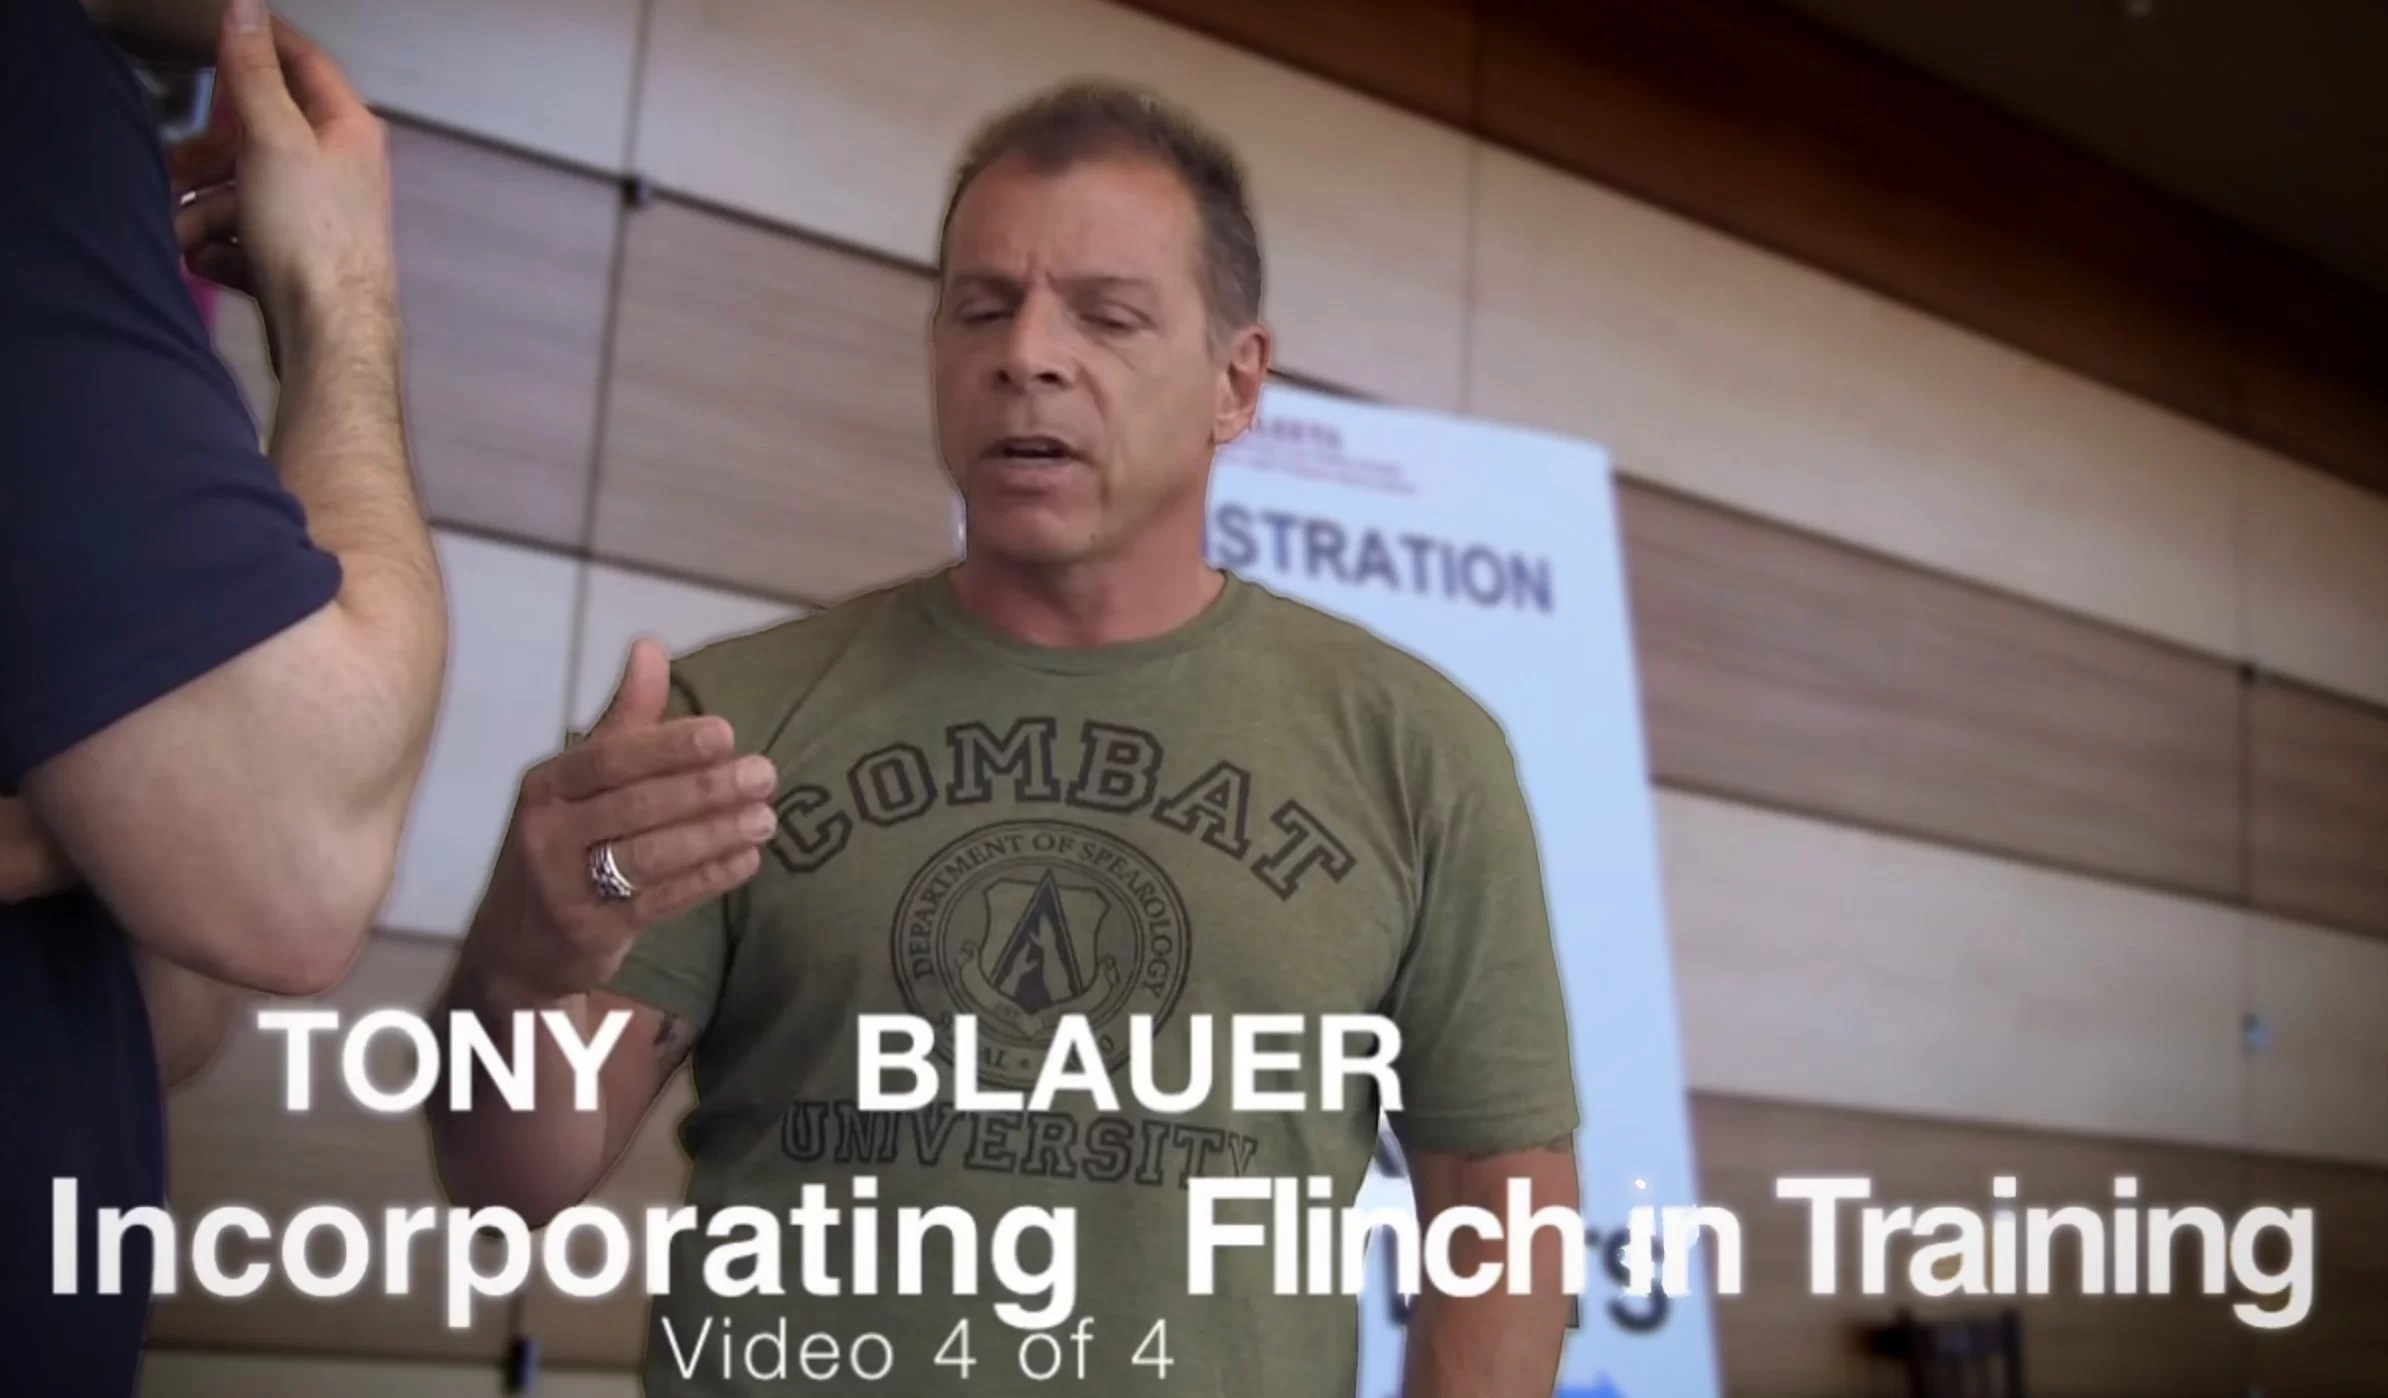 Tony Discussing Incorporating Flinch into Practical Daily Training